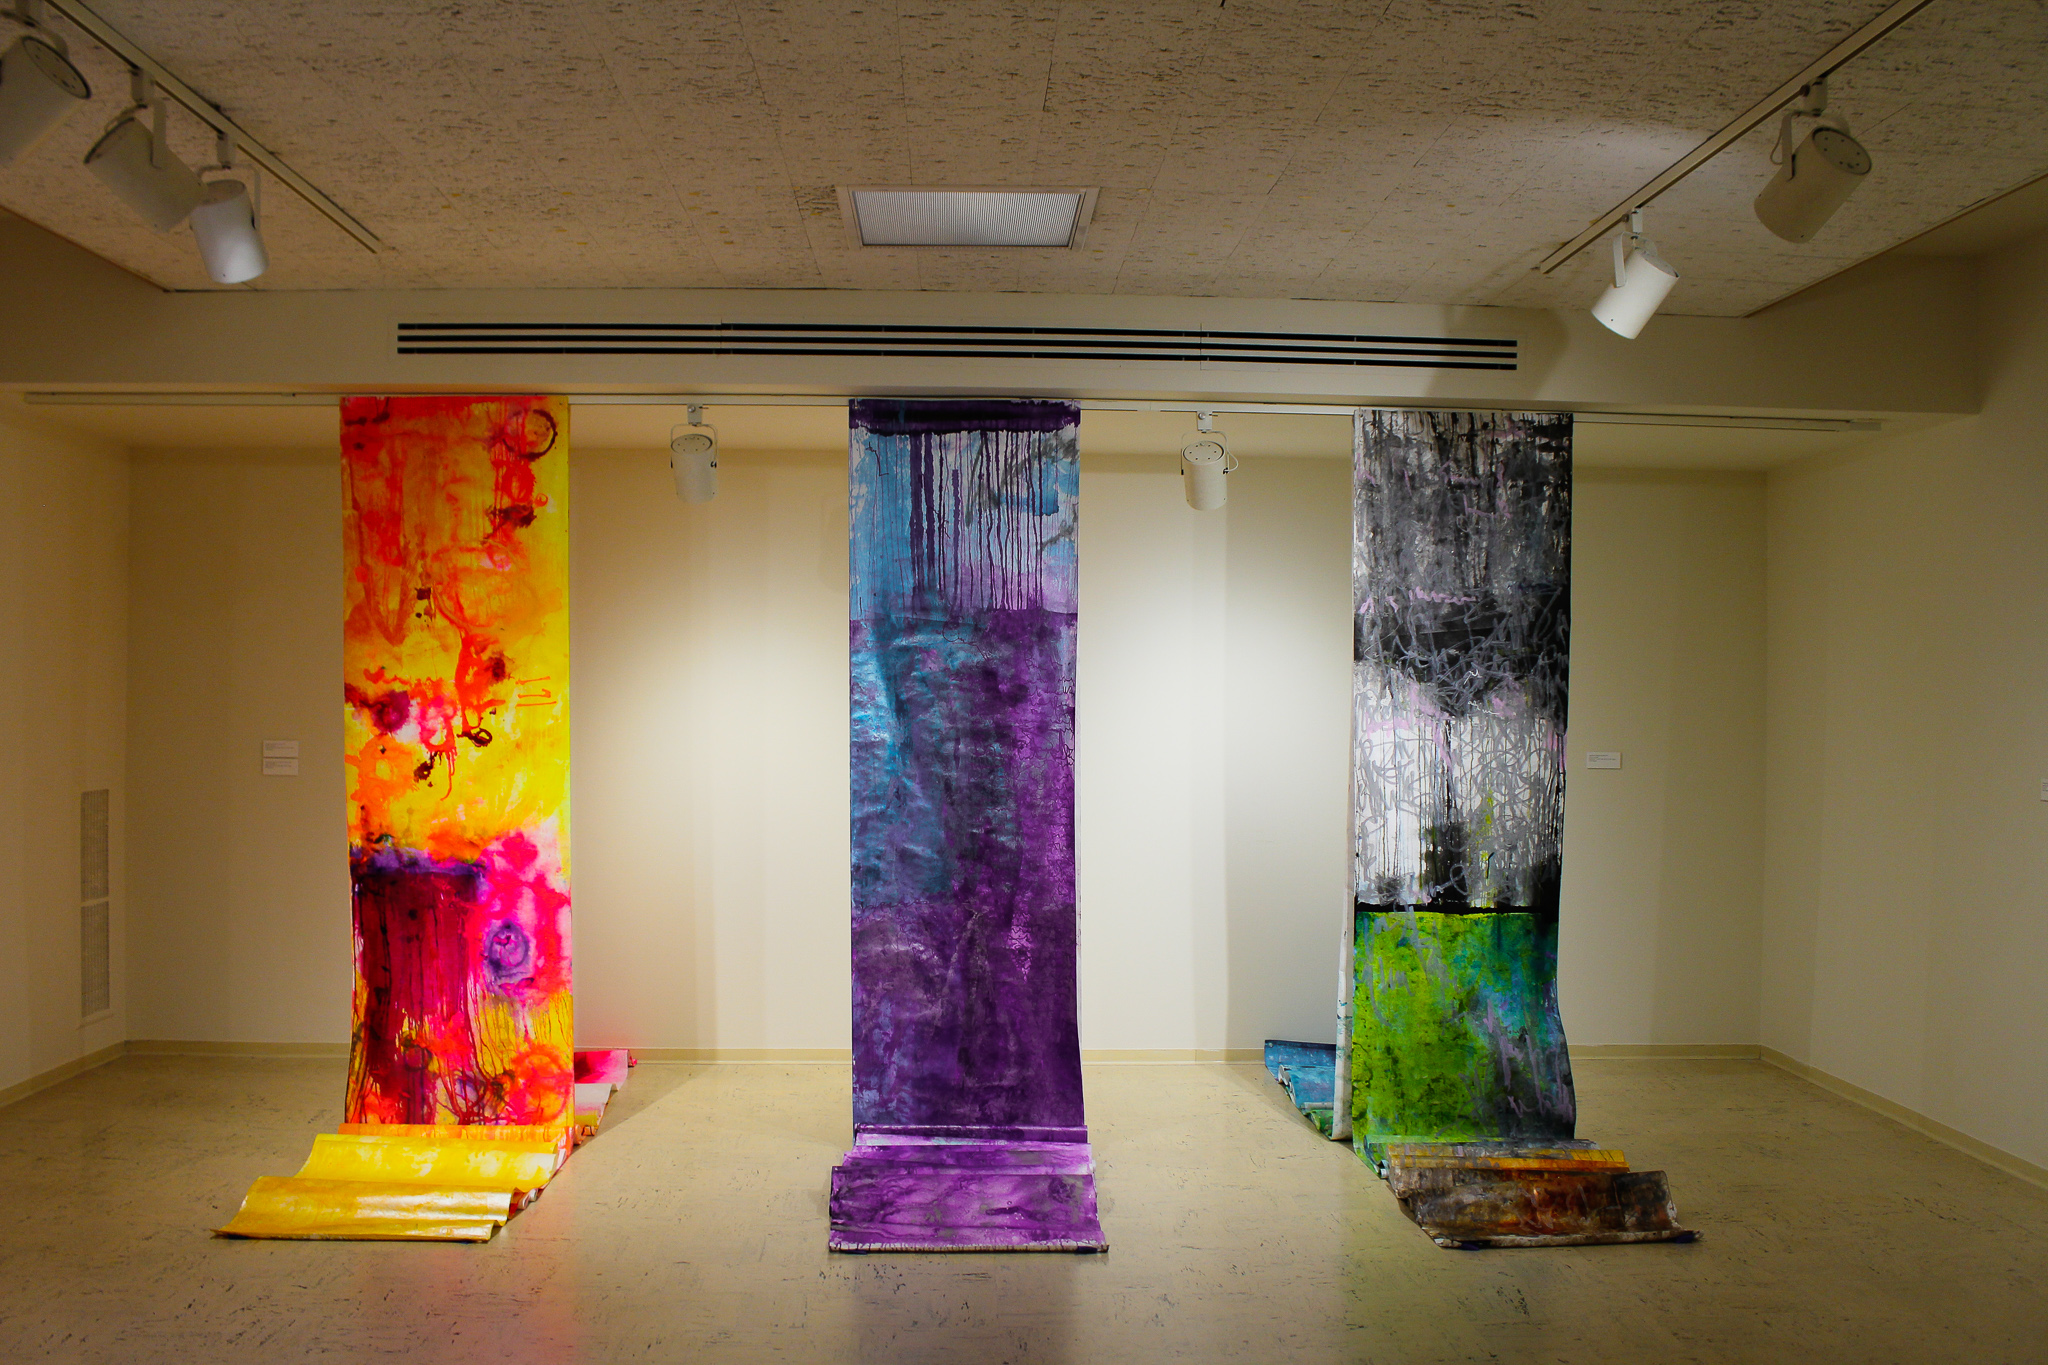 Scroll made for Russia inspired by Duluth (Left), Ohara Isumi-City (Middle), and Vaxjo (Right). Photo by Morgan Pint